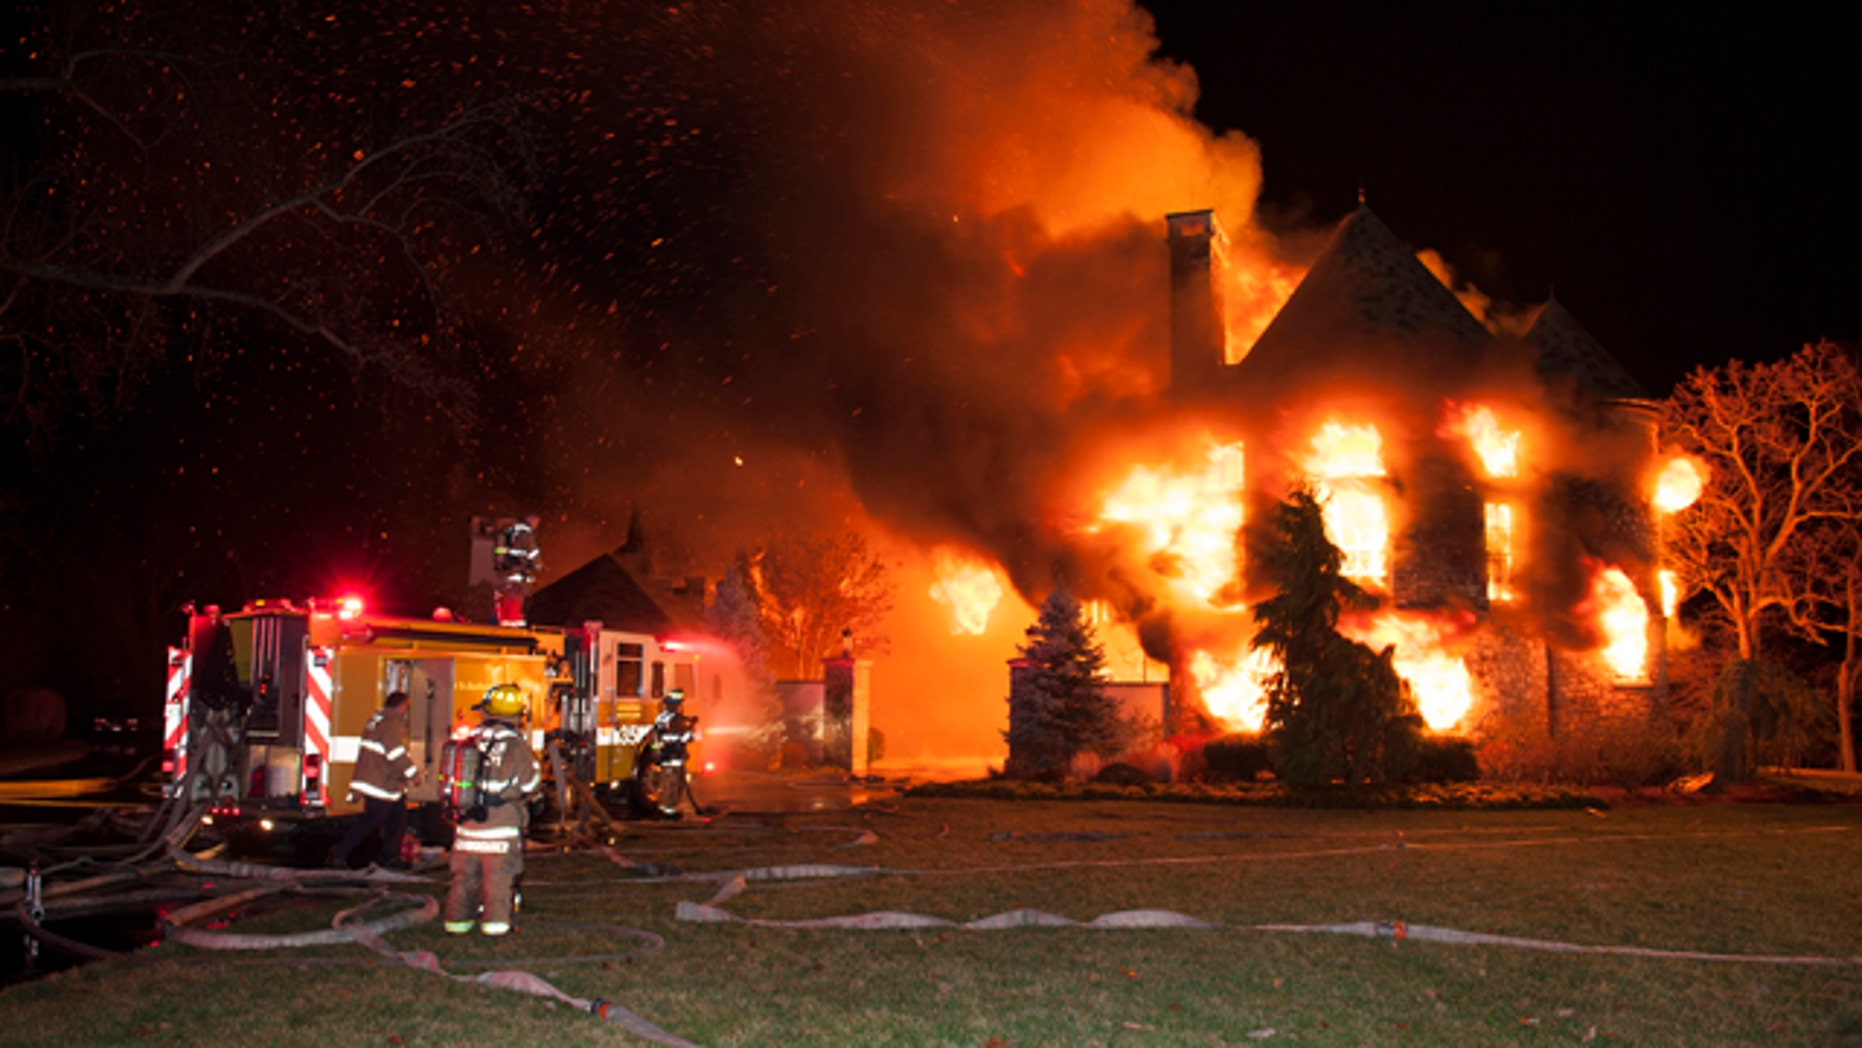 Jan. 19, 2015: Firefighters battle a four-alarm fire at a home on Childs Point Road, in Annapolis, Md. (AP Photo/Capital Gazette, Glenn A. Miller)